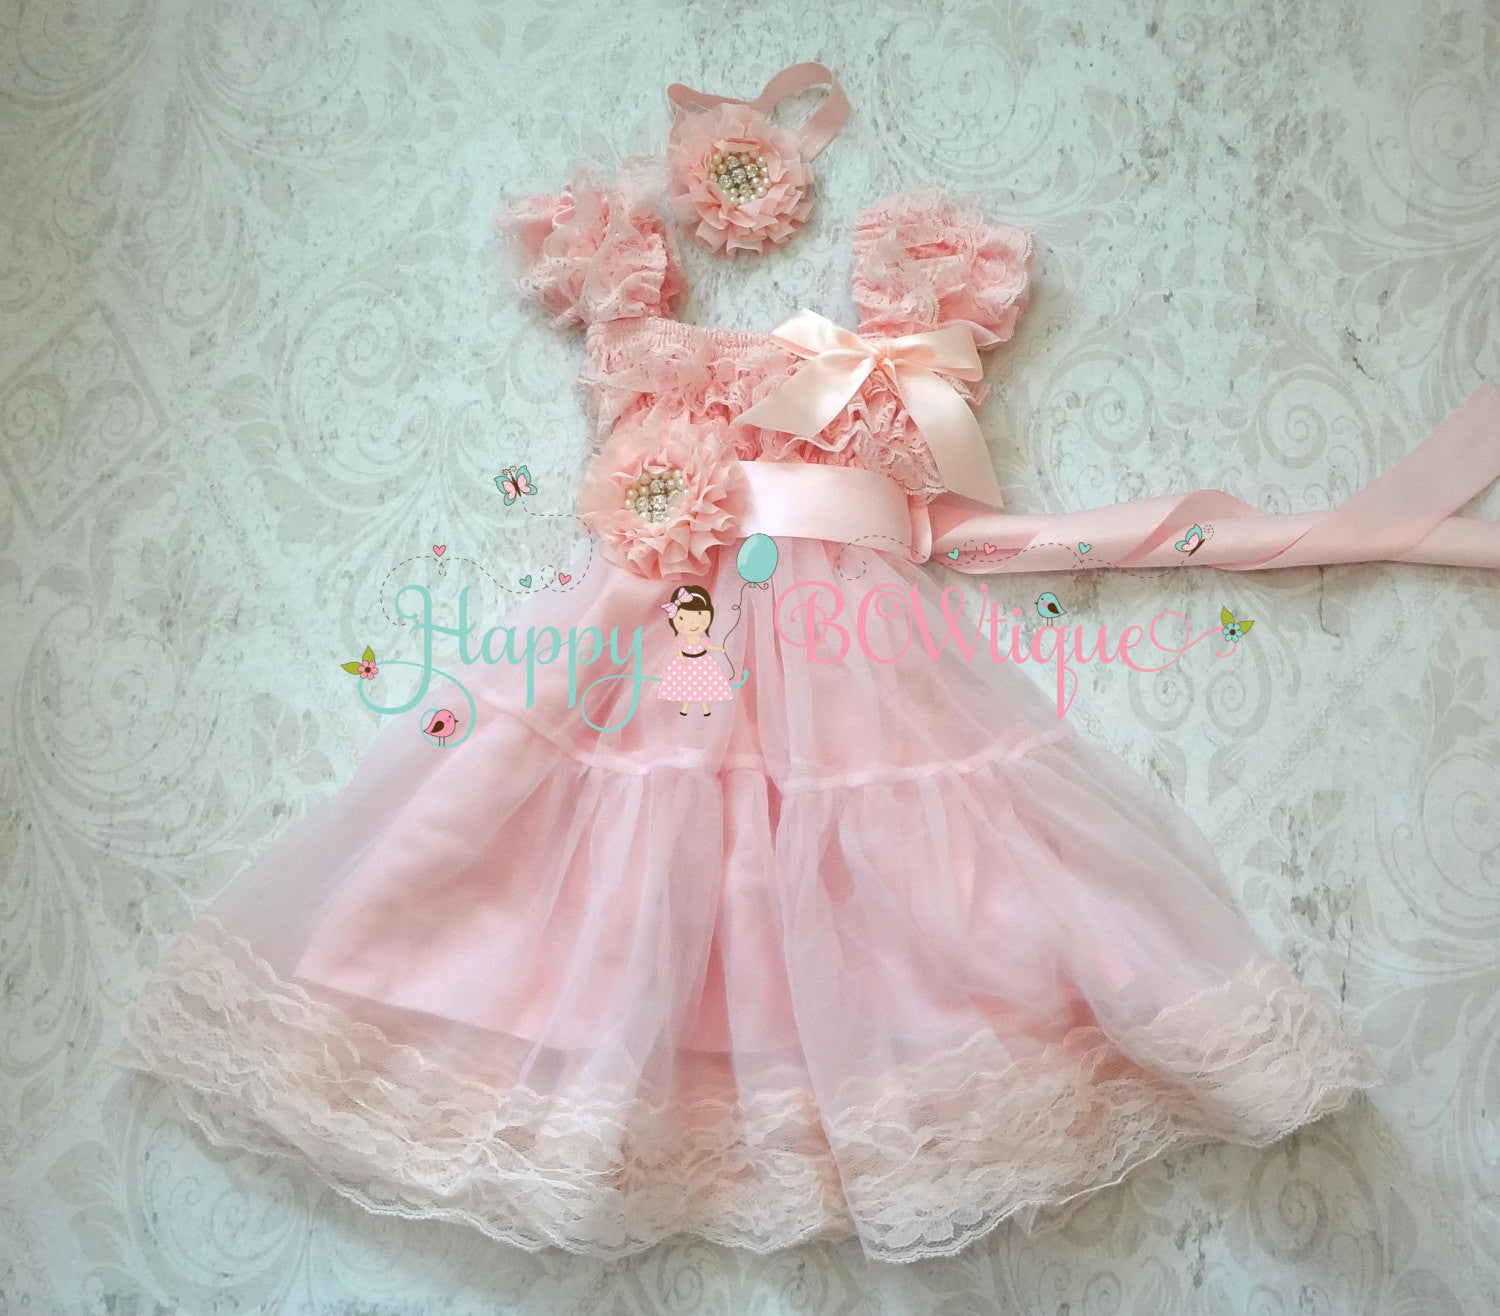 Baby Girls' dress/ Champagne PInk Chiffon Lace Dress set - Happy BOWtique - children's clothing, Baby Girl clothing